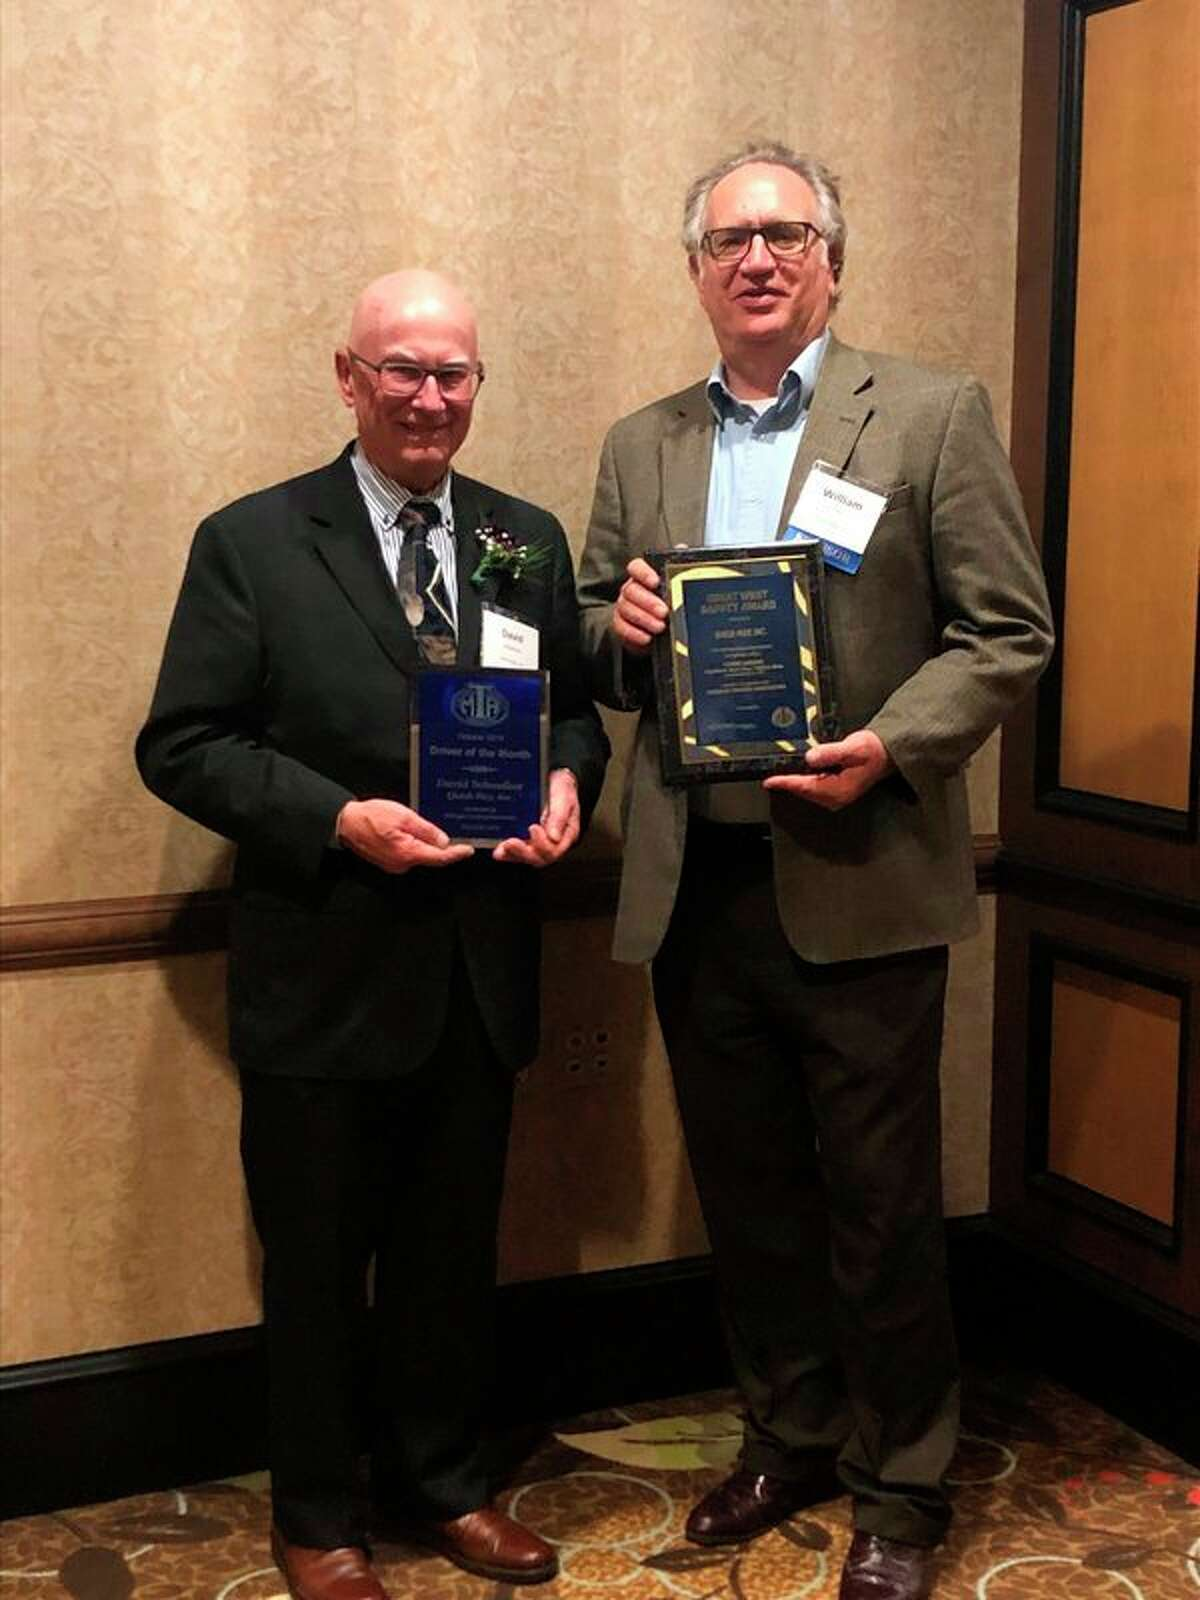 David Schmelzer,left, and William 'Bill' Dunn ofQuick-Way, Inc.accept awards from theMichigan Trucking Association. (Photo provided/Quick-Way)